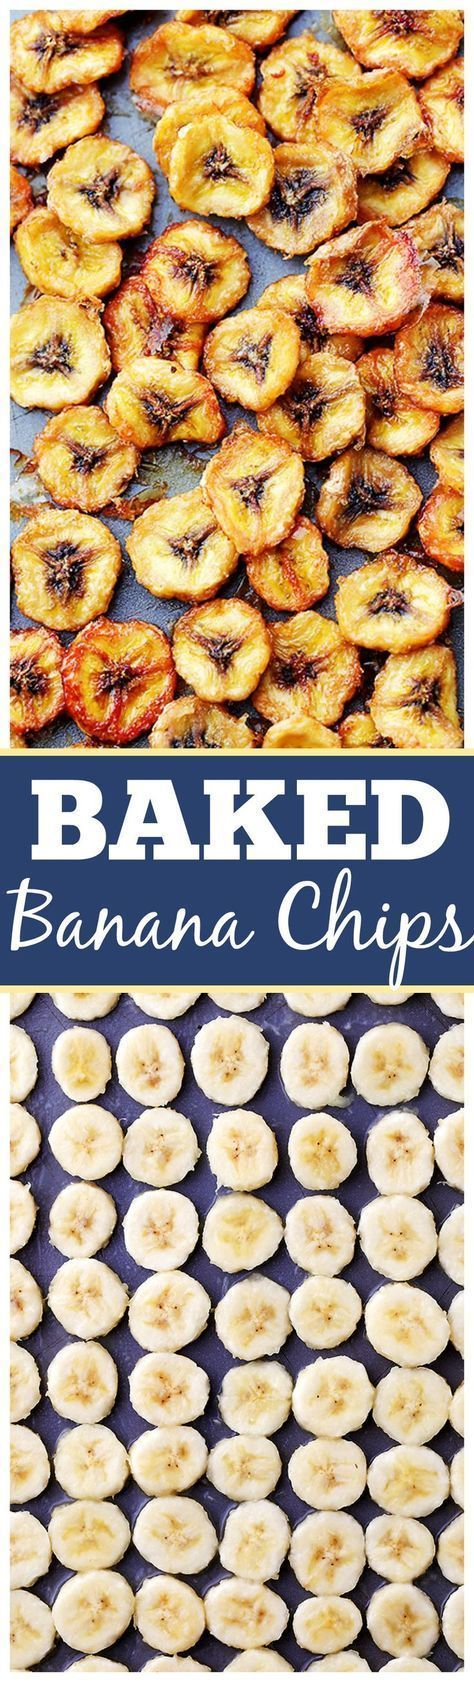 Homemade Baked Banana Chips – Deliciously sweet and guilt-free baked banana chips are so easy to make and are the perfect portable, healthy snack to have on hand.